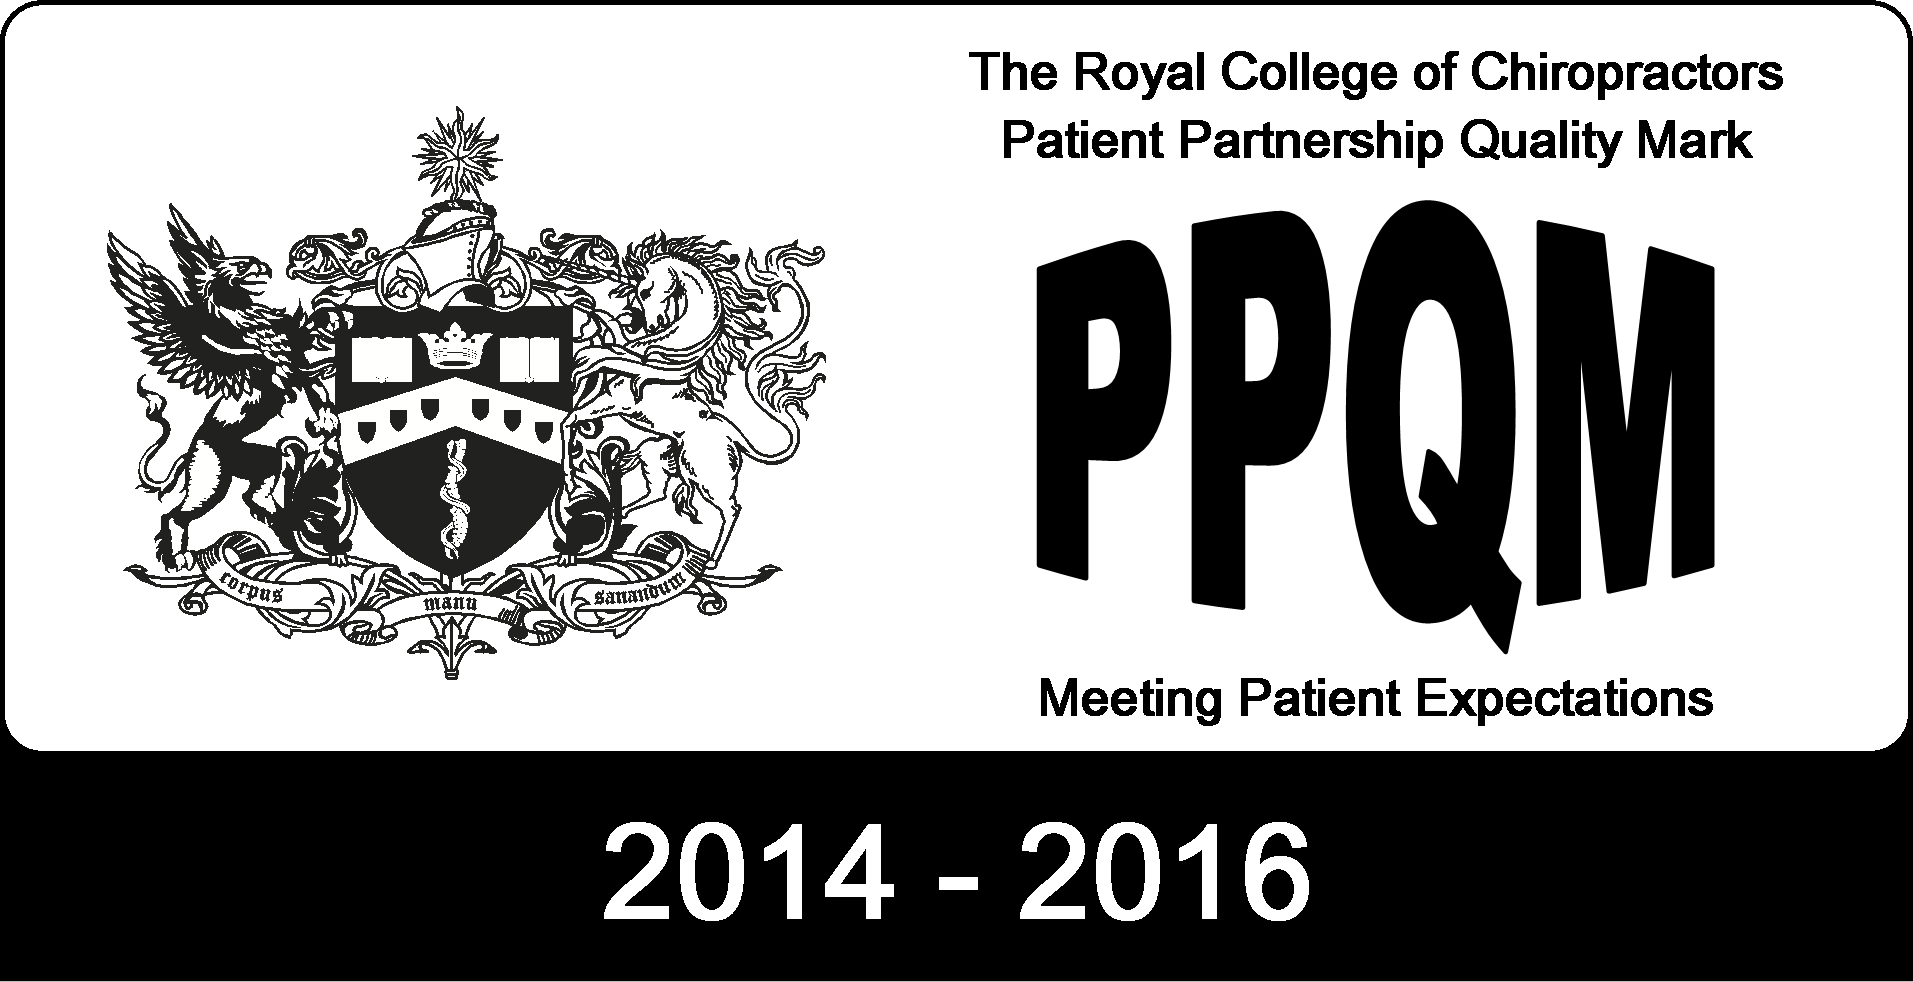 College of chiropractors patient partnership quality mark award (PPQM)